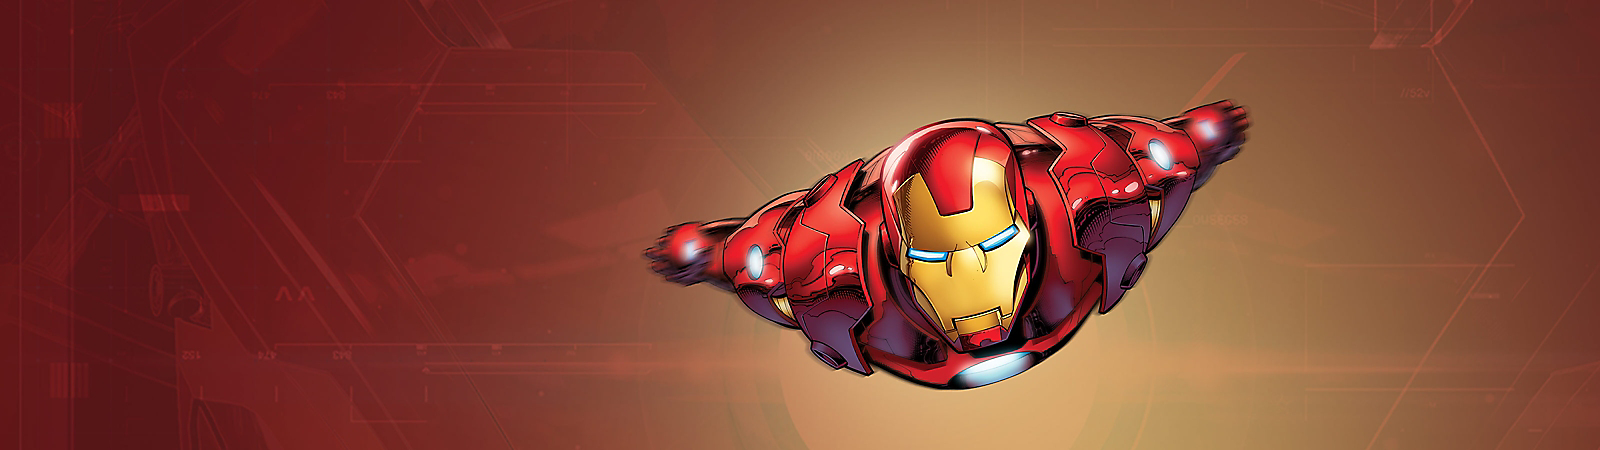 Background image of Iron Man